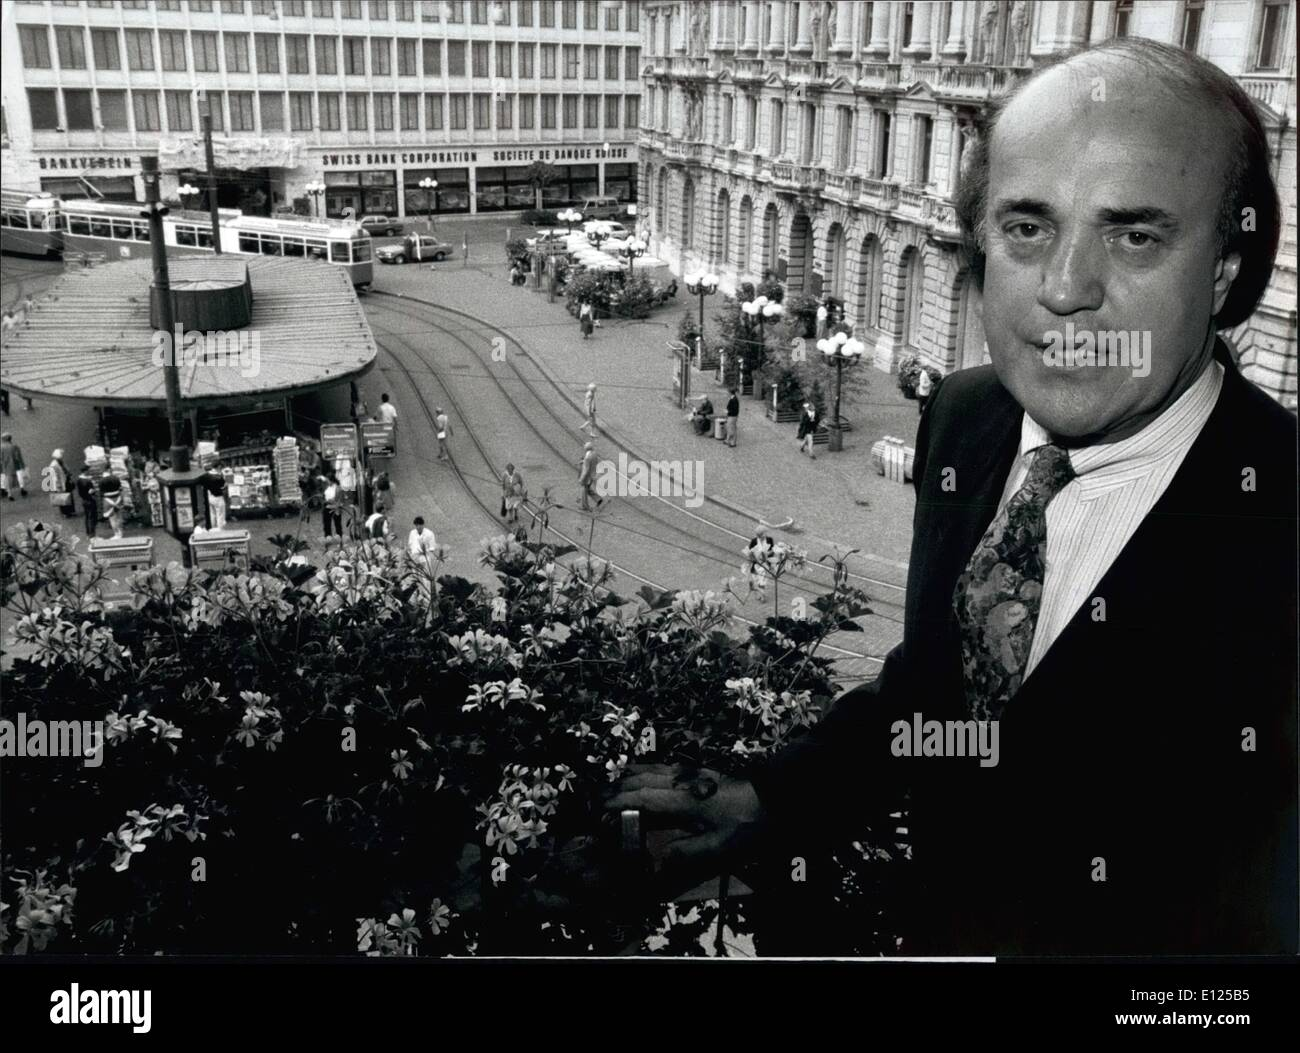 Sep. 09, 1991 - Peter Arnett in Zurich. The famous Gulf War reporter Peter Arnett has visited Zurich these days. Our picture shows him in front of the Parade place. 18-9-1991 - Stock Image